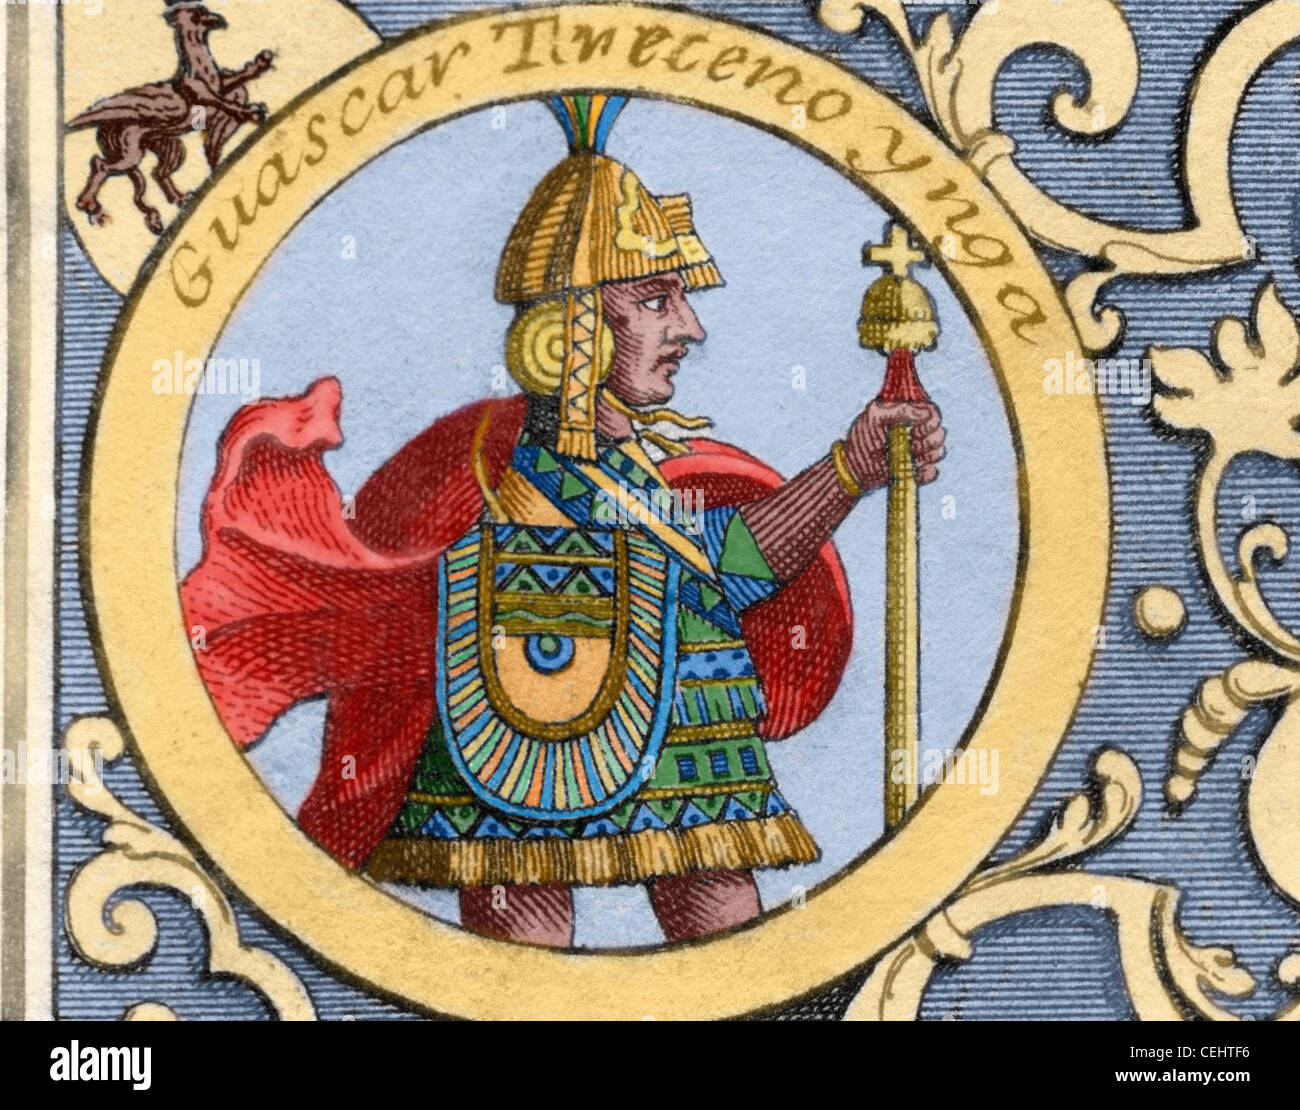 Huascar Inca (h.1491-1532). Sapa Inca of the Inca empire from 1527 to 1532. Son of Huayna Capac. Colored engraving. - Stock Image